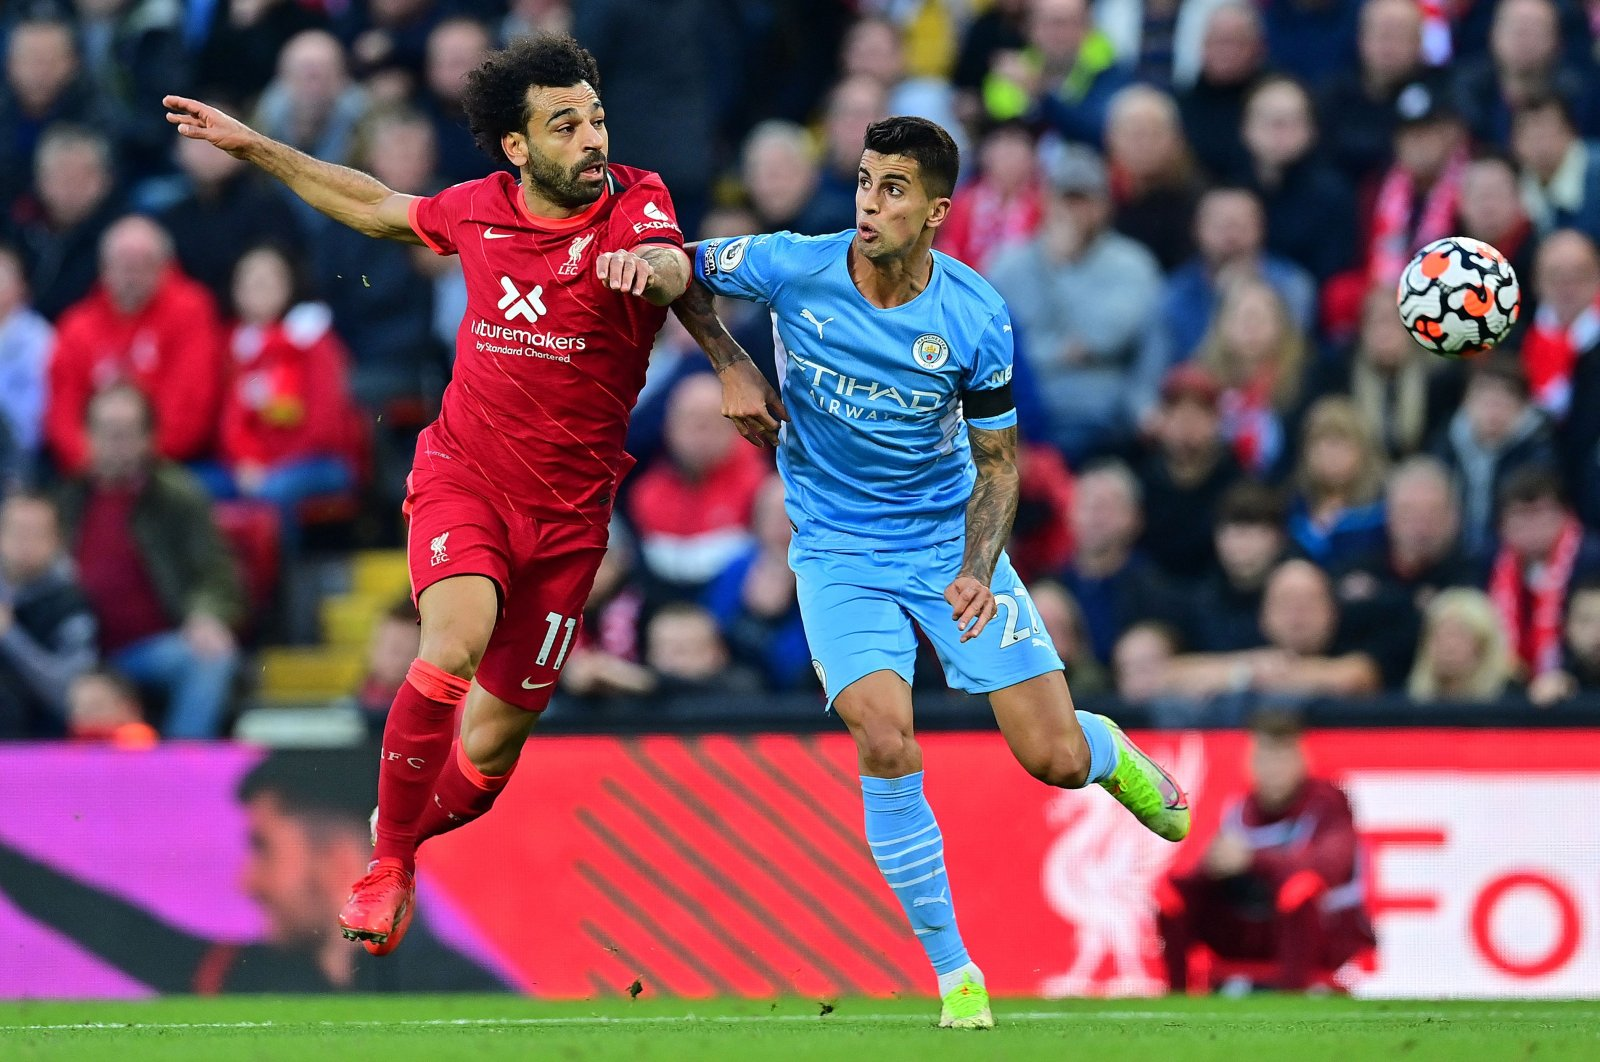 Liverpool's Egyptian midfielder Mohamed Salah (L) challenges Manchester City's Spanish midfielder Rodrigo during the English Premier League football match between Liverpool and Manchester City at Anfield in Liverpool, northwest England, on Oct. 3, 2021. (AFP Photo)